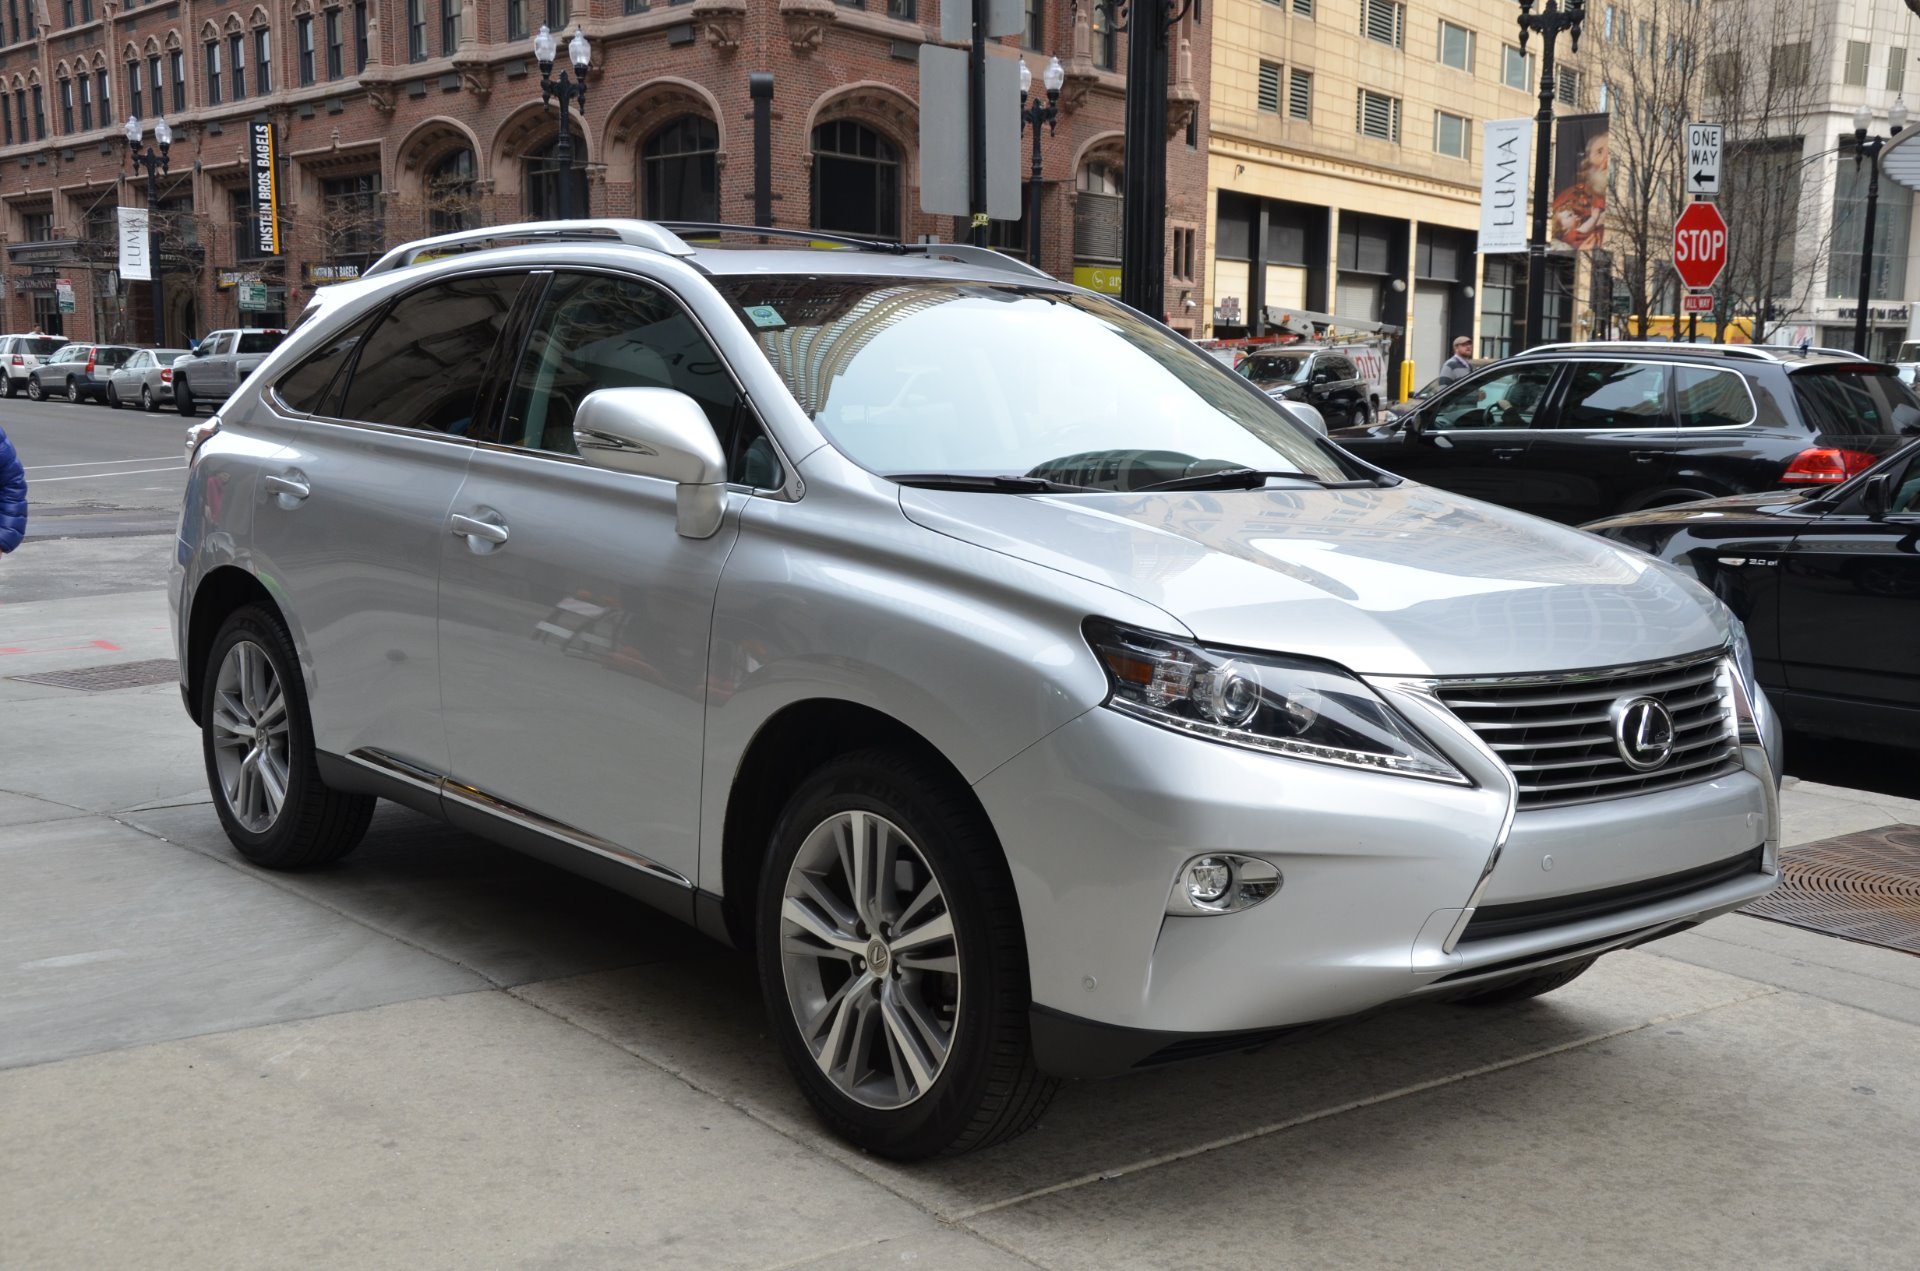 rc new from berwyn lexus serving pinterest night cicero and il cars oak luxury park of chicago the own pin mcgrath in